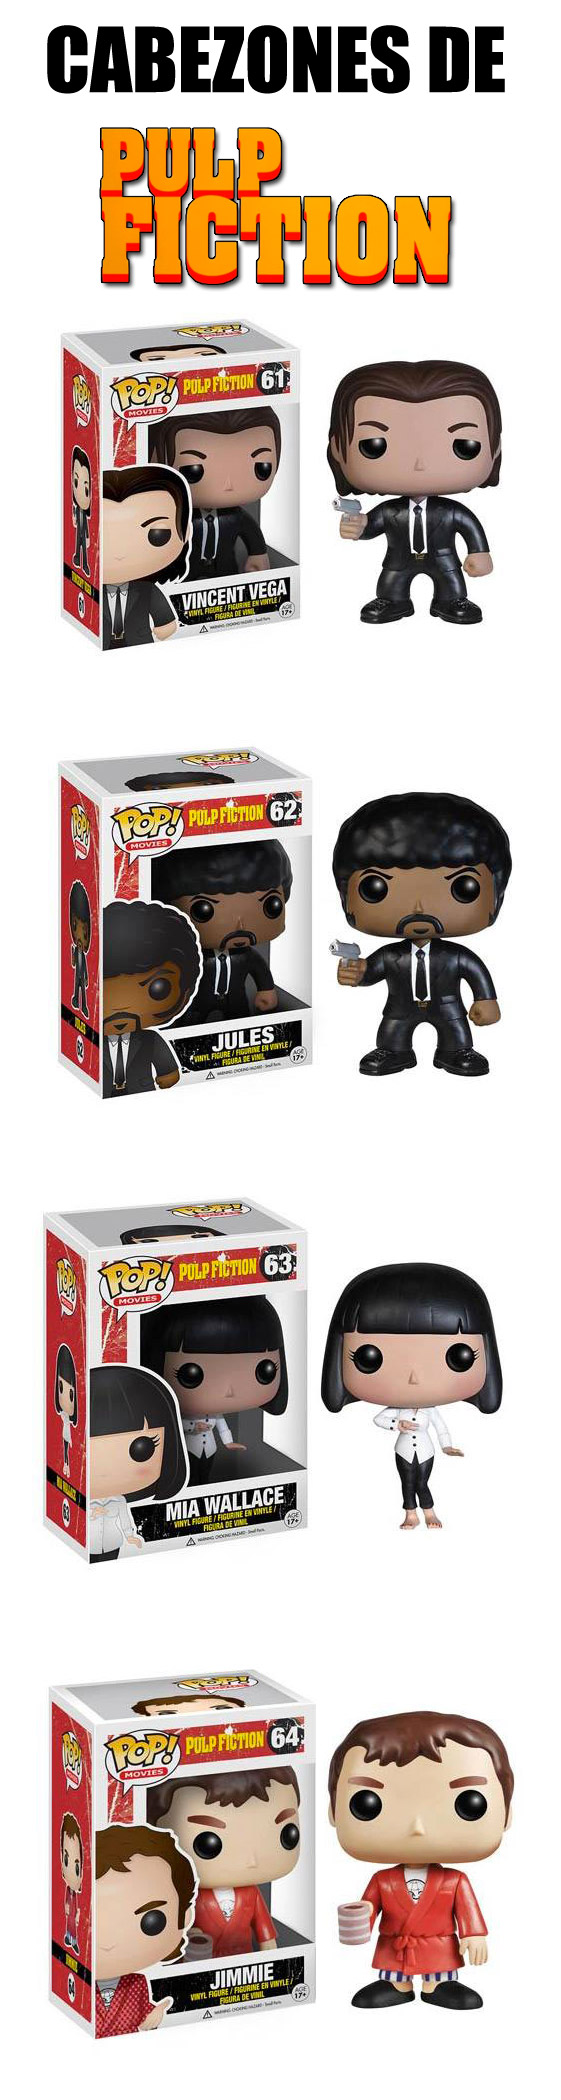 Cabezones de Pulp Fiction